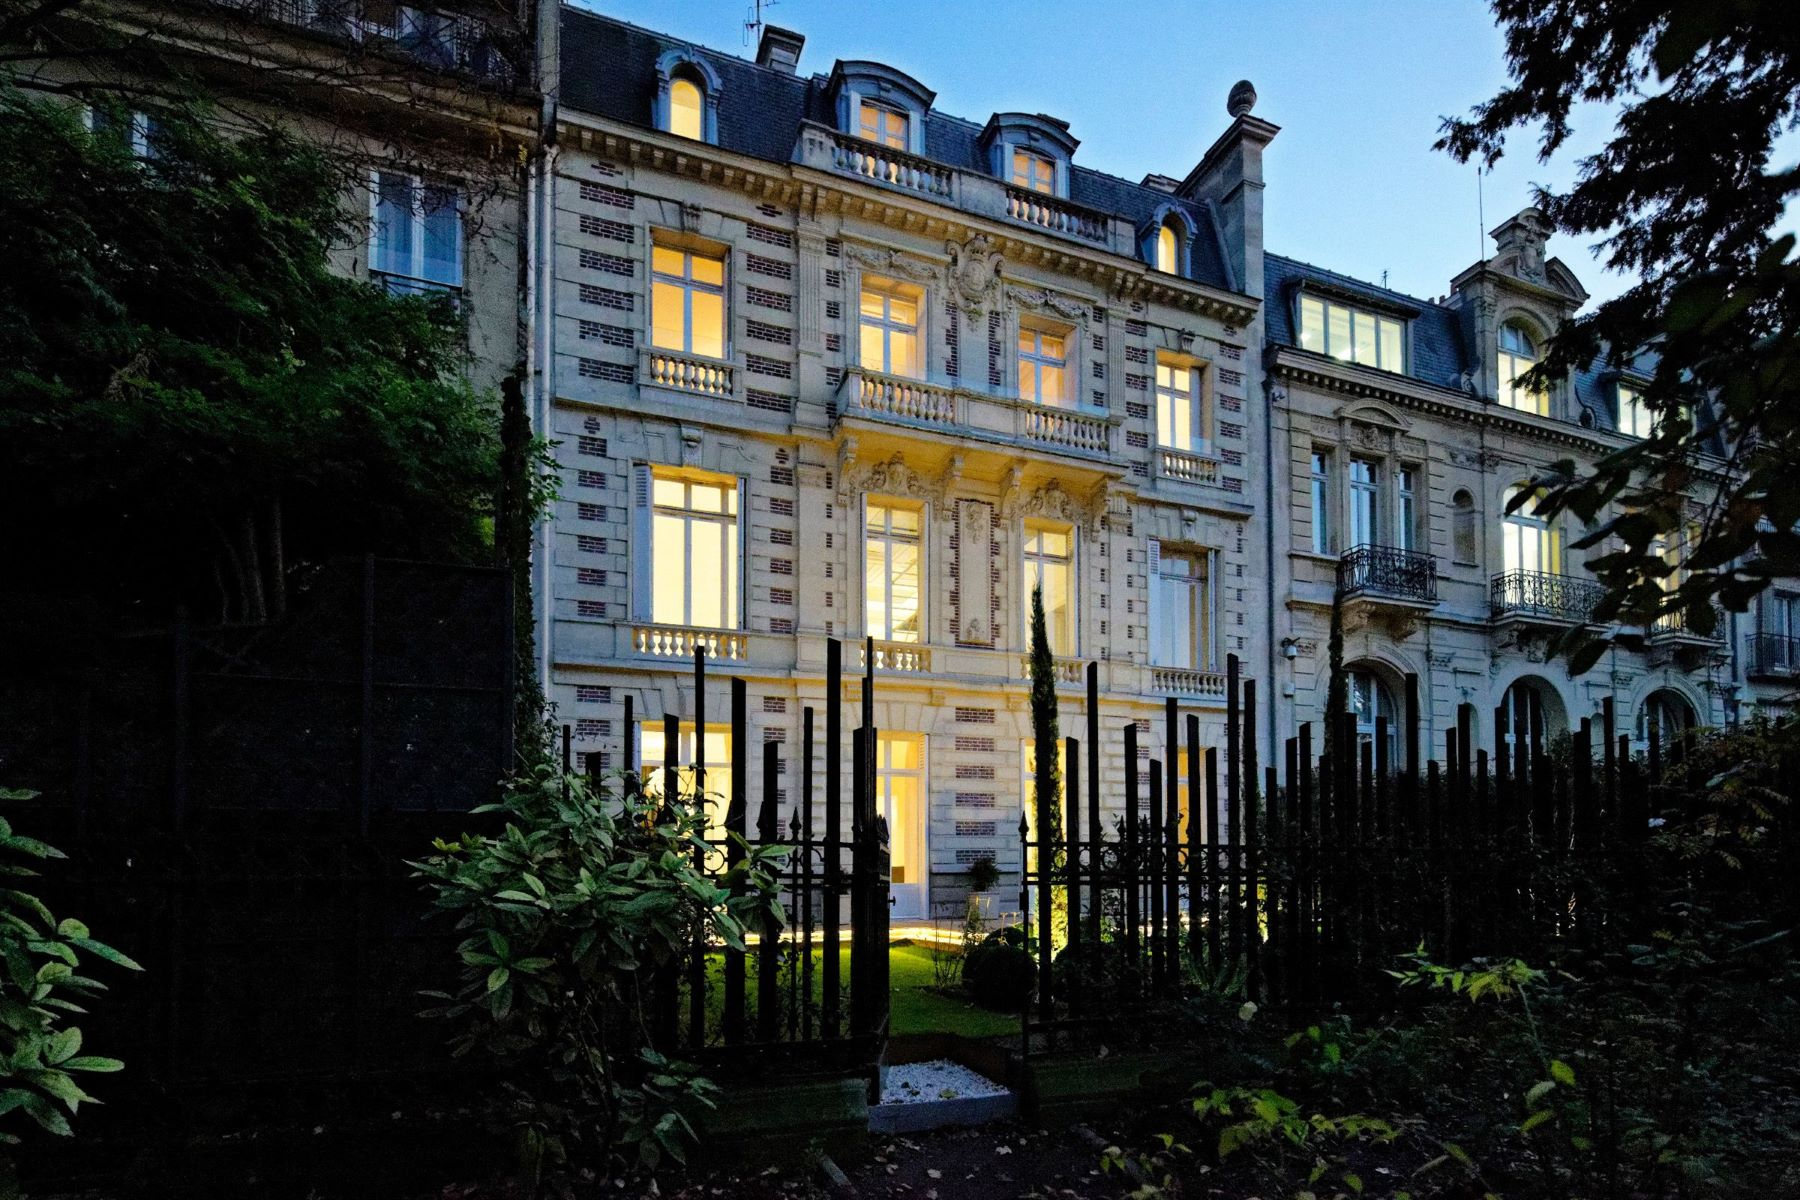 Casa Unifamiliar por un Venta en A 600 sq.m Private Mansion for sale, Paris 8 - Parc Monceau Paris, Ile-De-France, 75008 Francia